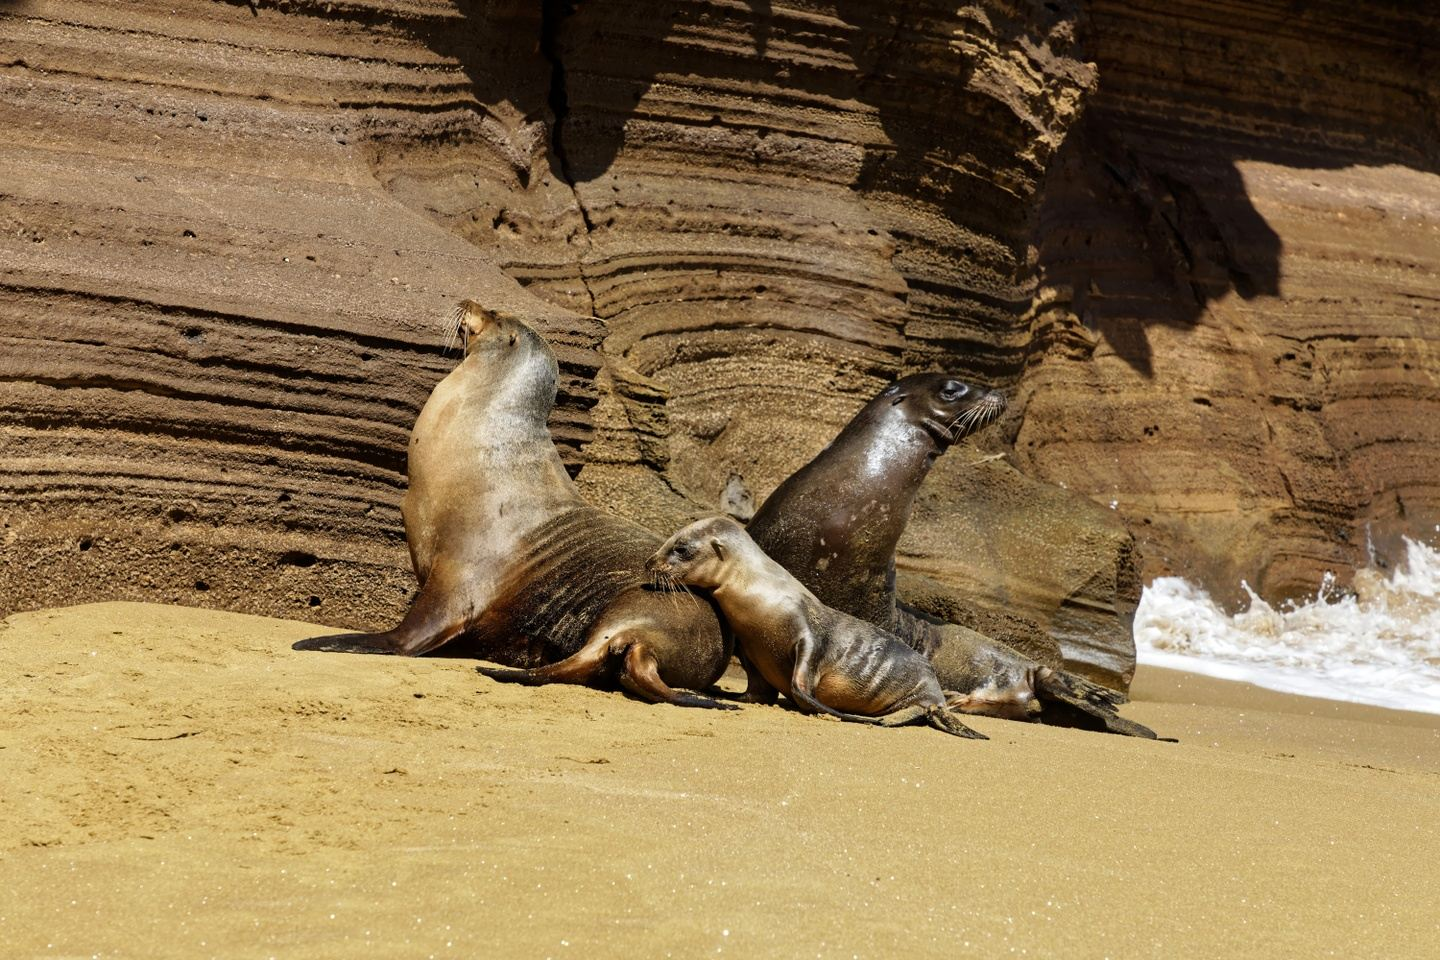 Galapagos island hopping from east to west